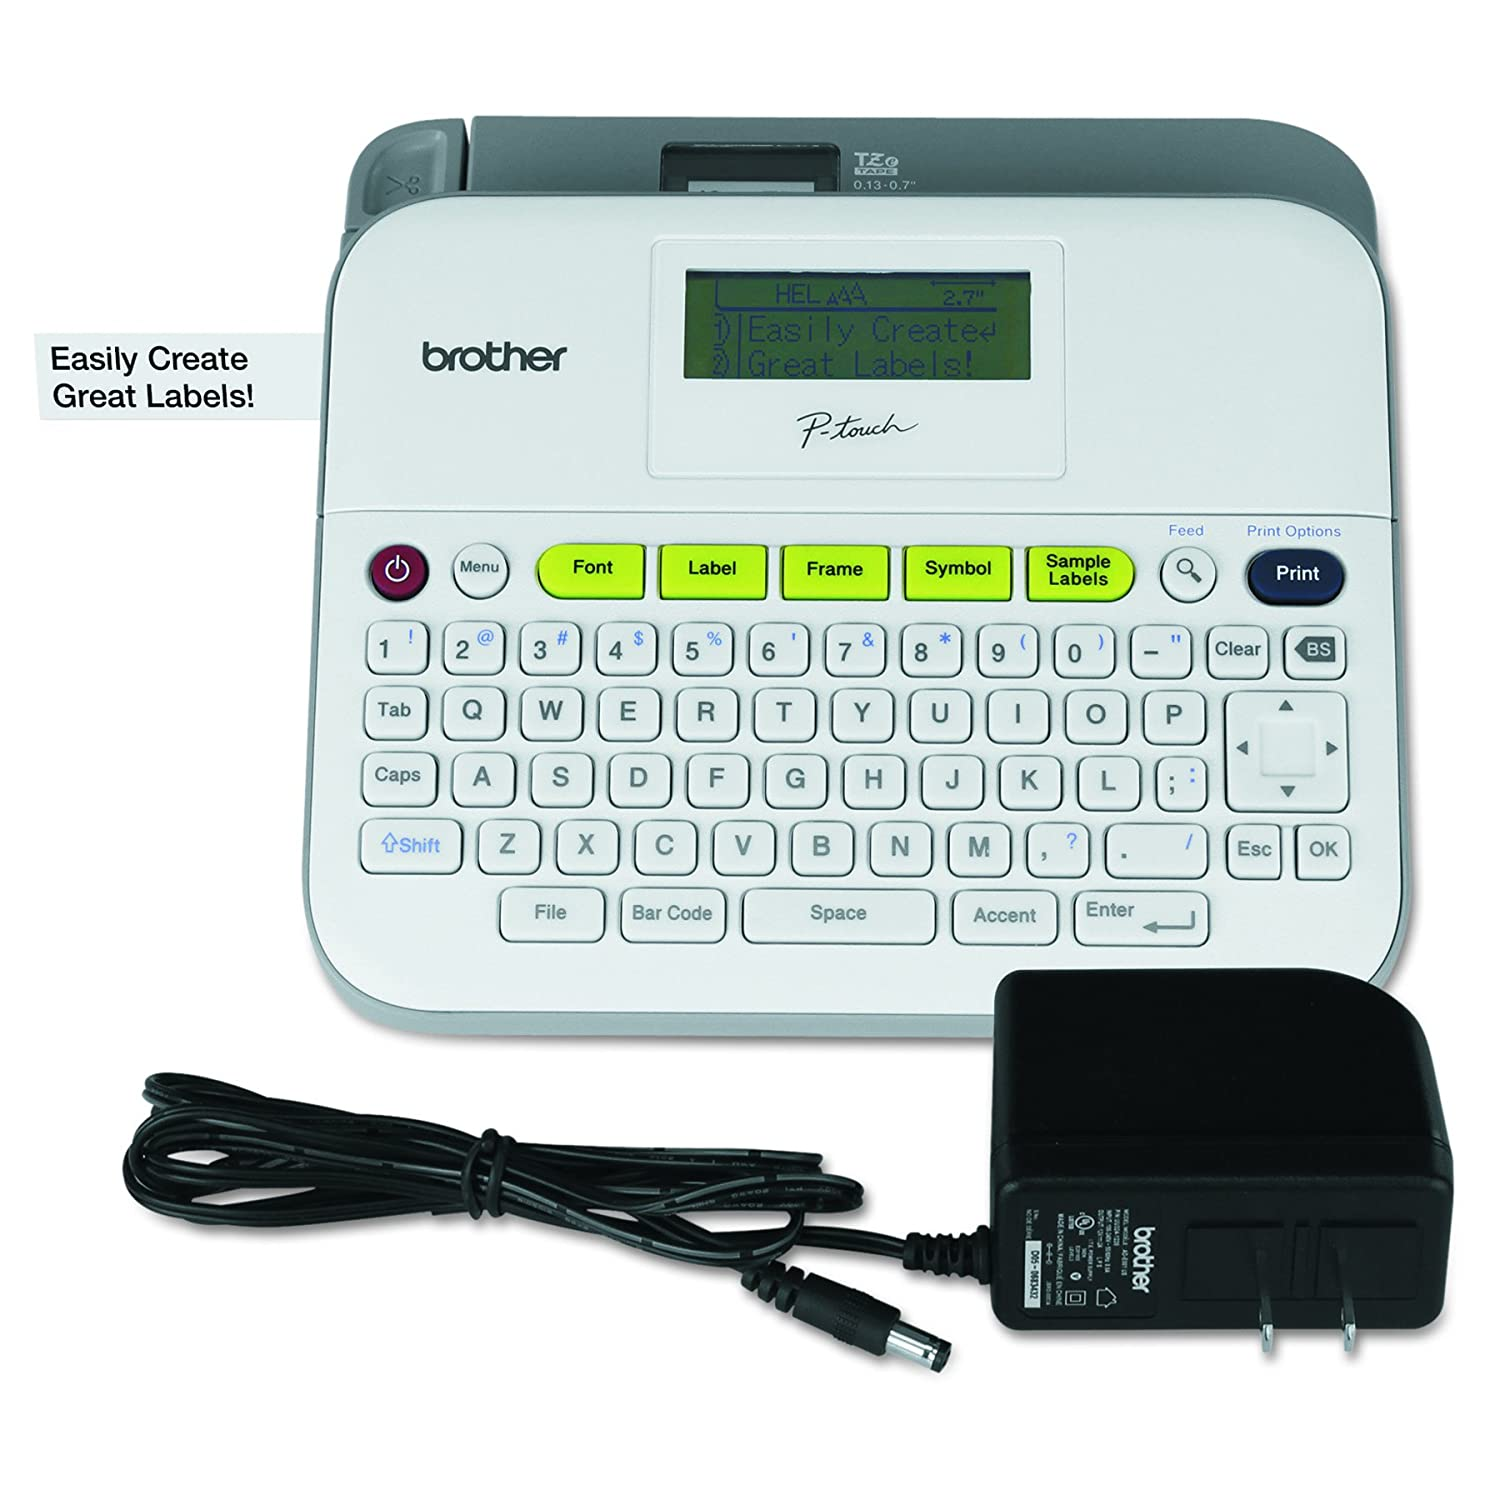 Amazon.com : Brother P-touch Label Maker, Versatile Easy-to-Use ...